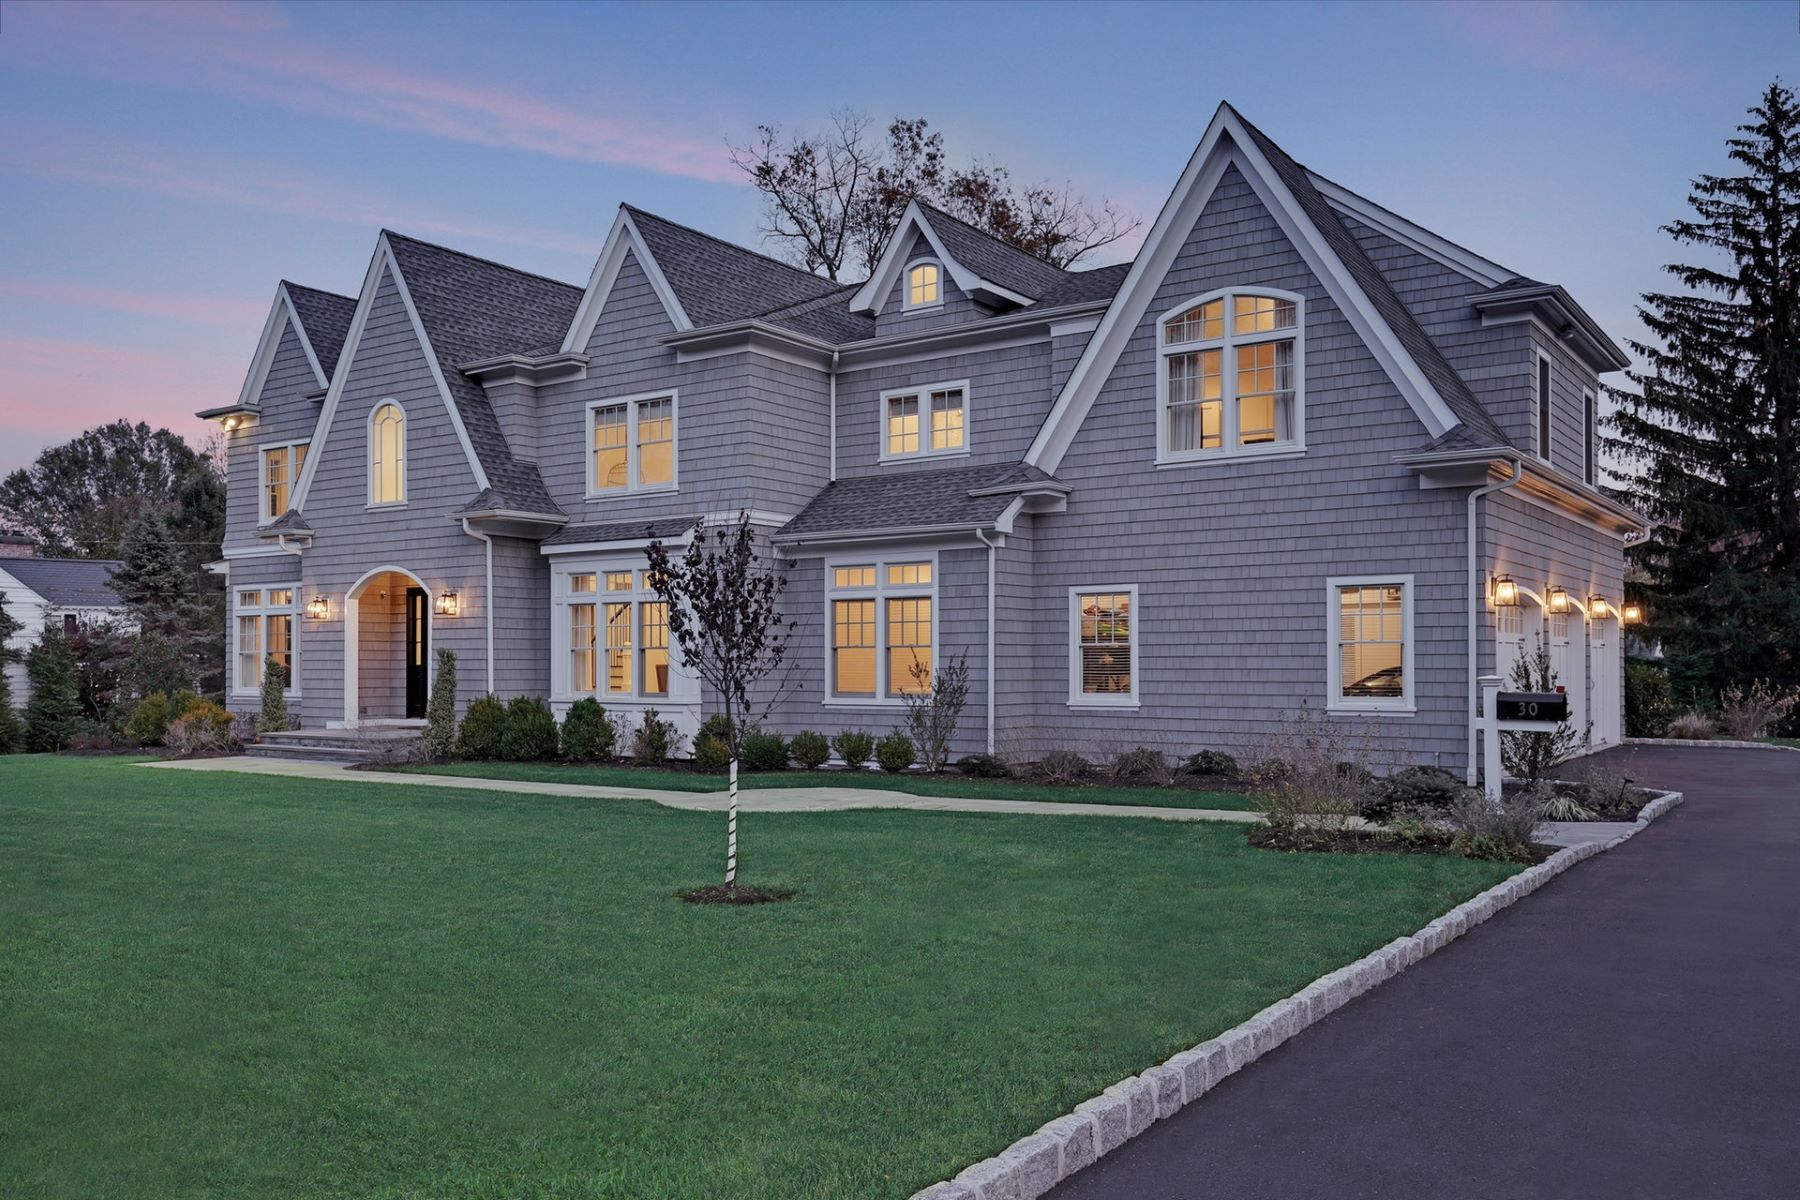 Single Family Homes for Sale at Designer Masterpiece 30 Jefferson Avenue, Short Hills, New Jersey 07078 United States